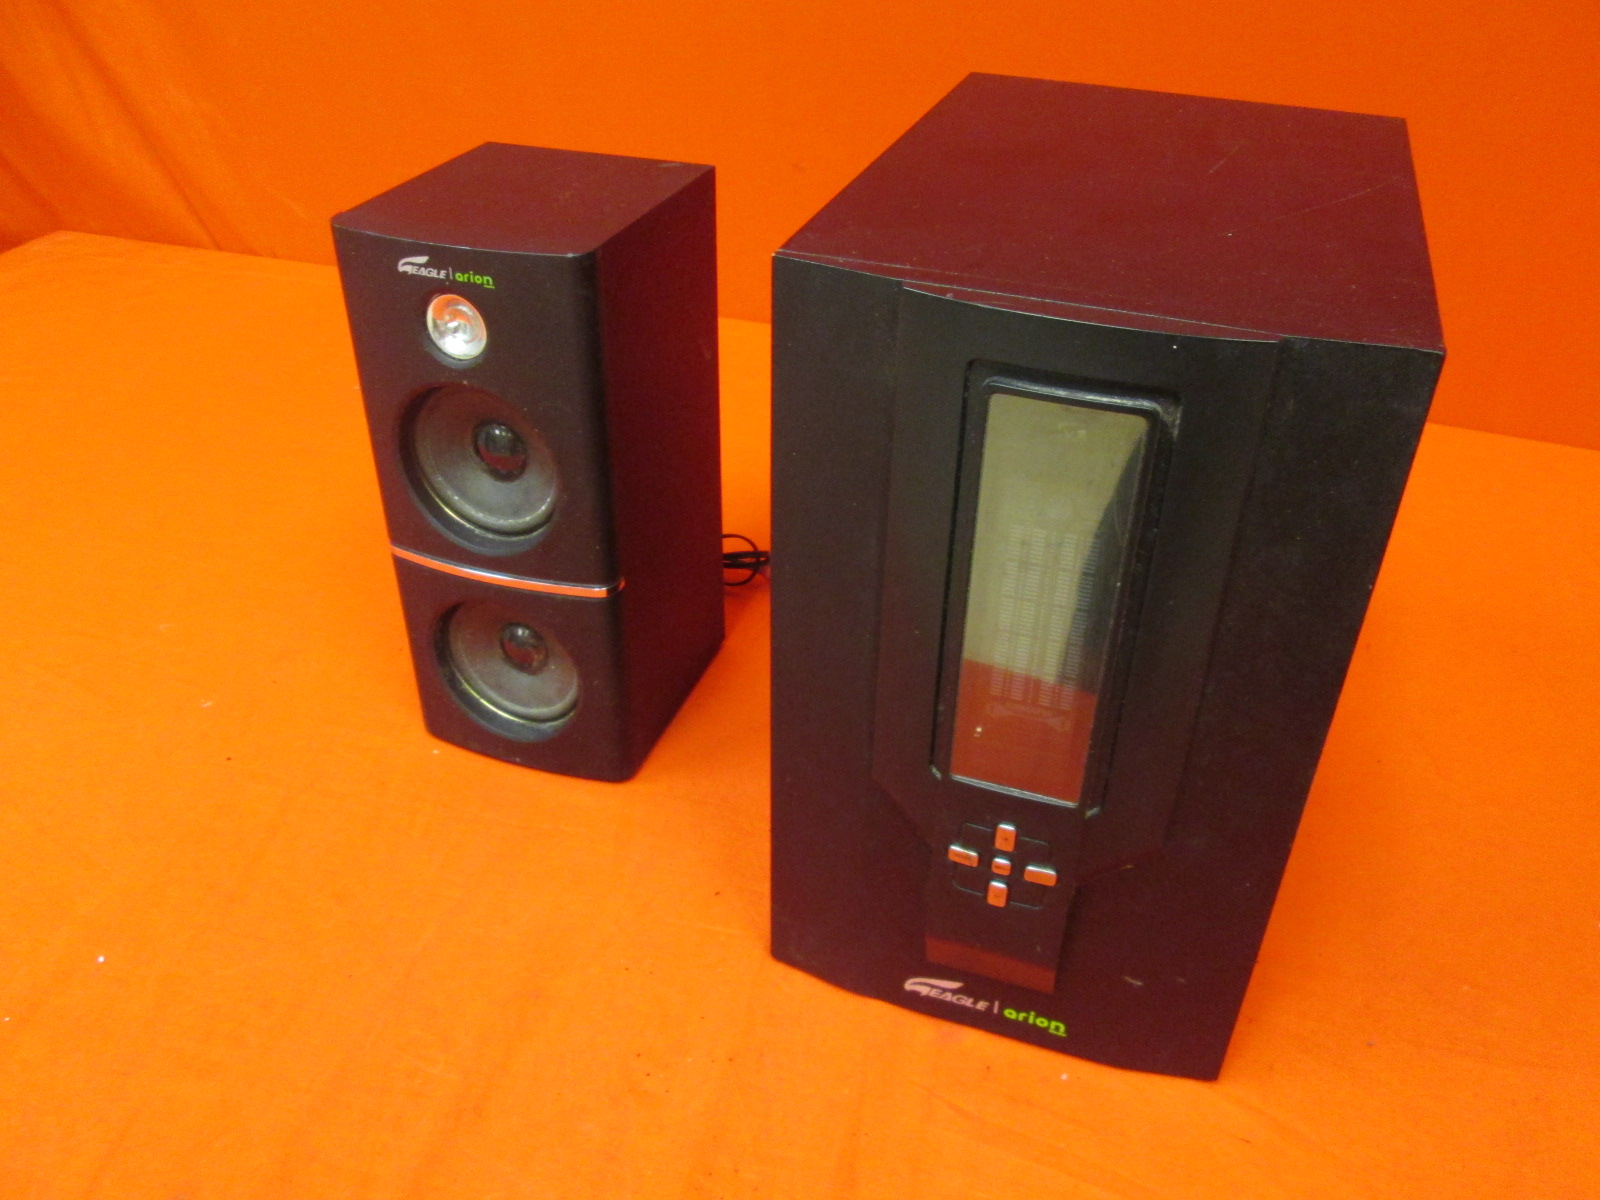 Arion Legacy AR504LR-BK 2.1 Speaker System With Subwoofer Incomplete